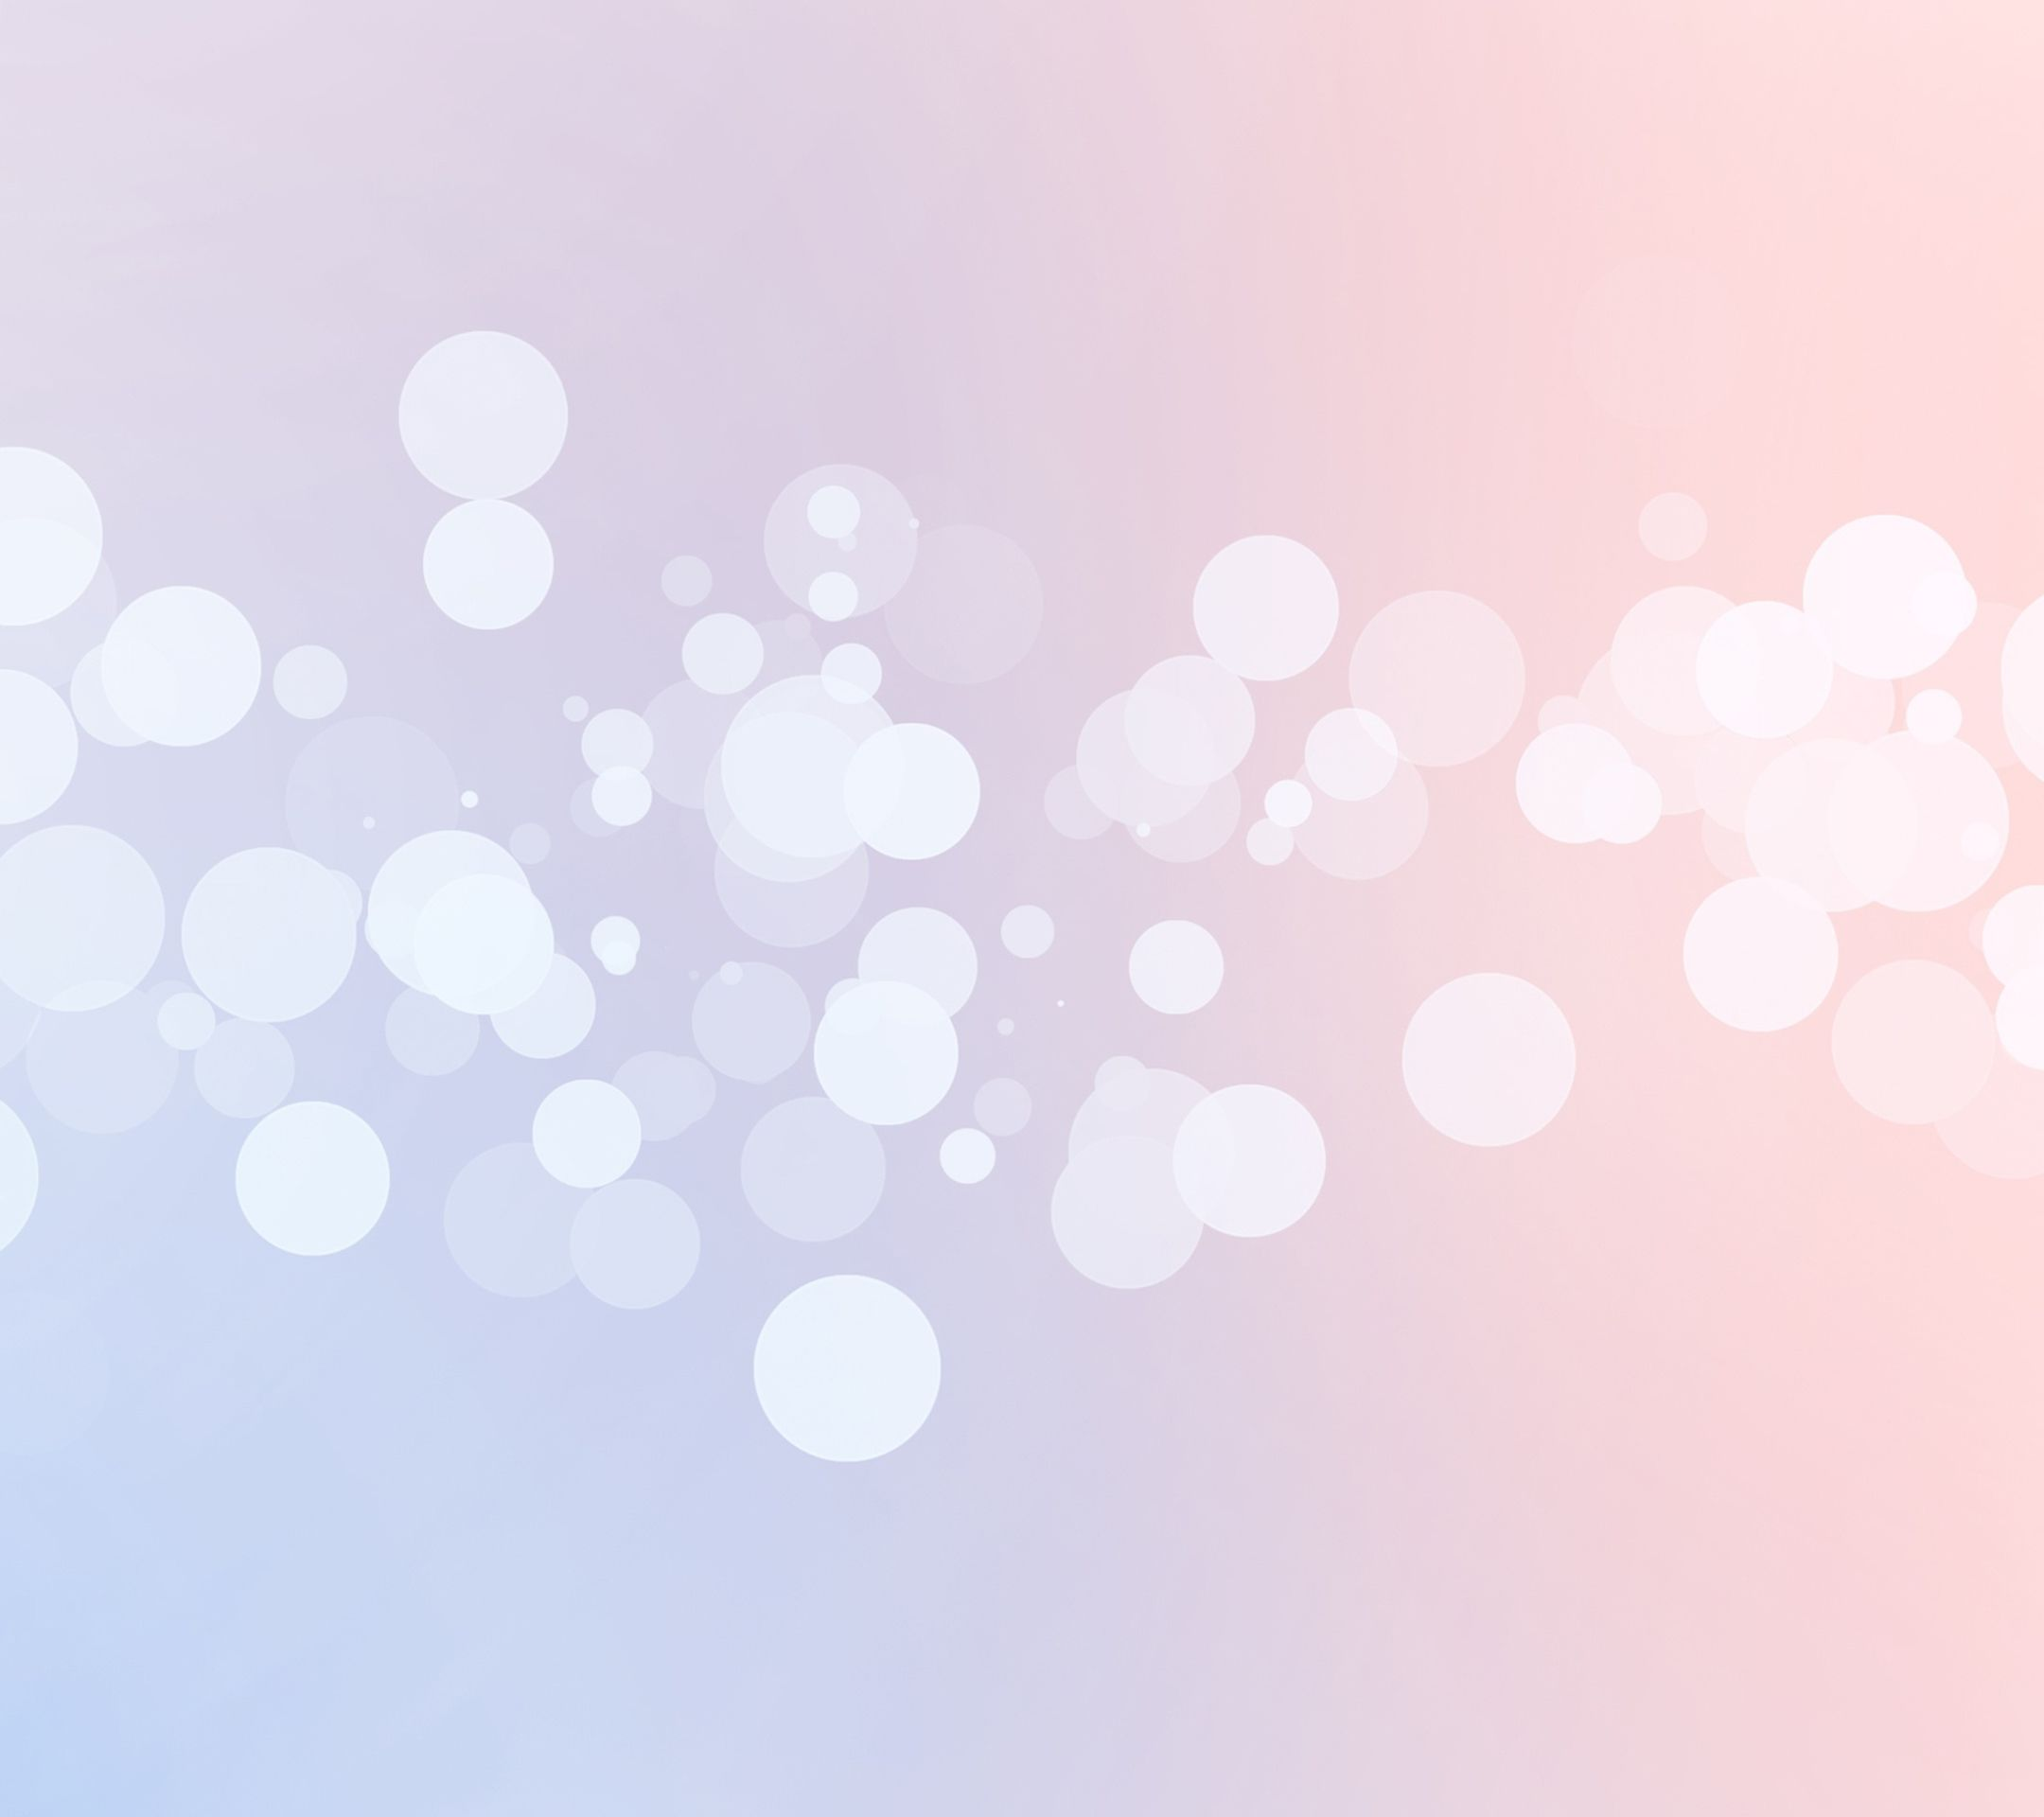 Simple Background Images Hd Free Download